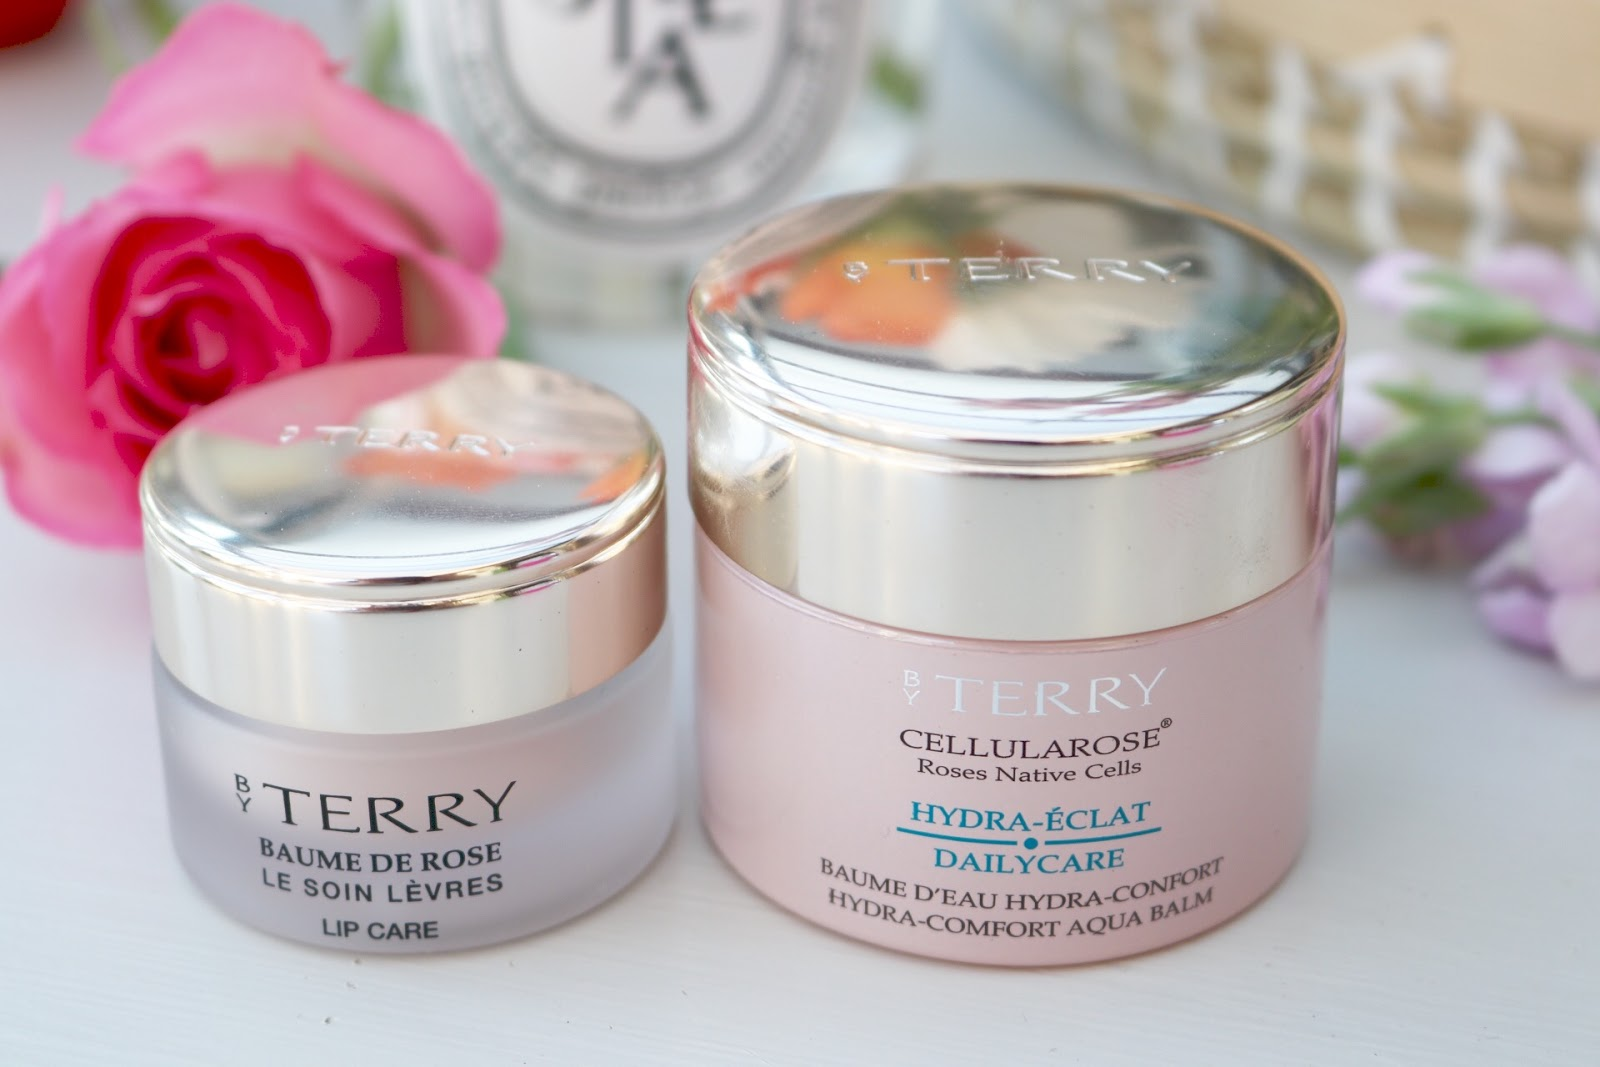 ByTerry Baume de Rose and Cellularose Hydra-Comfort Aqua Balm